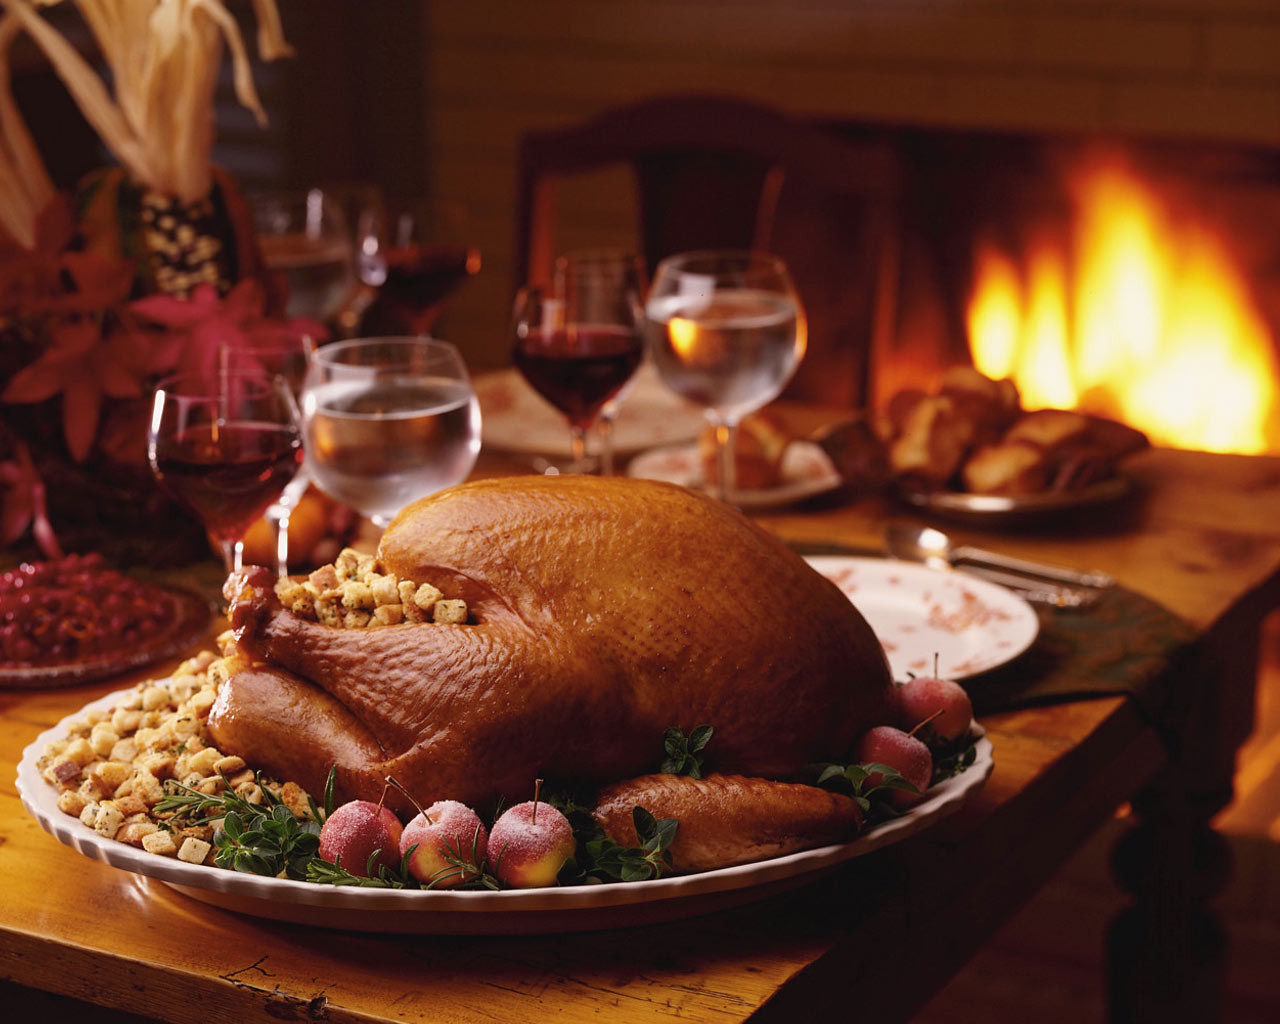 Free Thanksgiving Dinner  25 Happy Thanksgiving Day 2012 HD Wallpapers – Designbolts